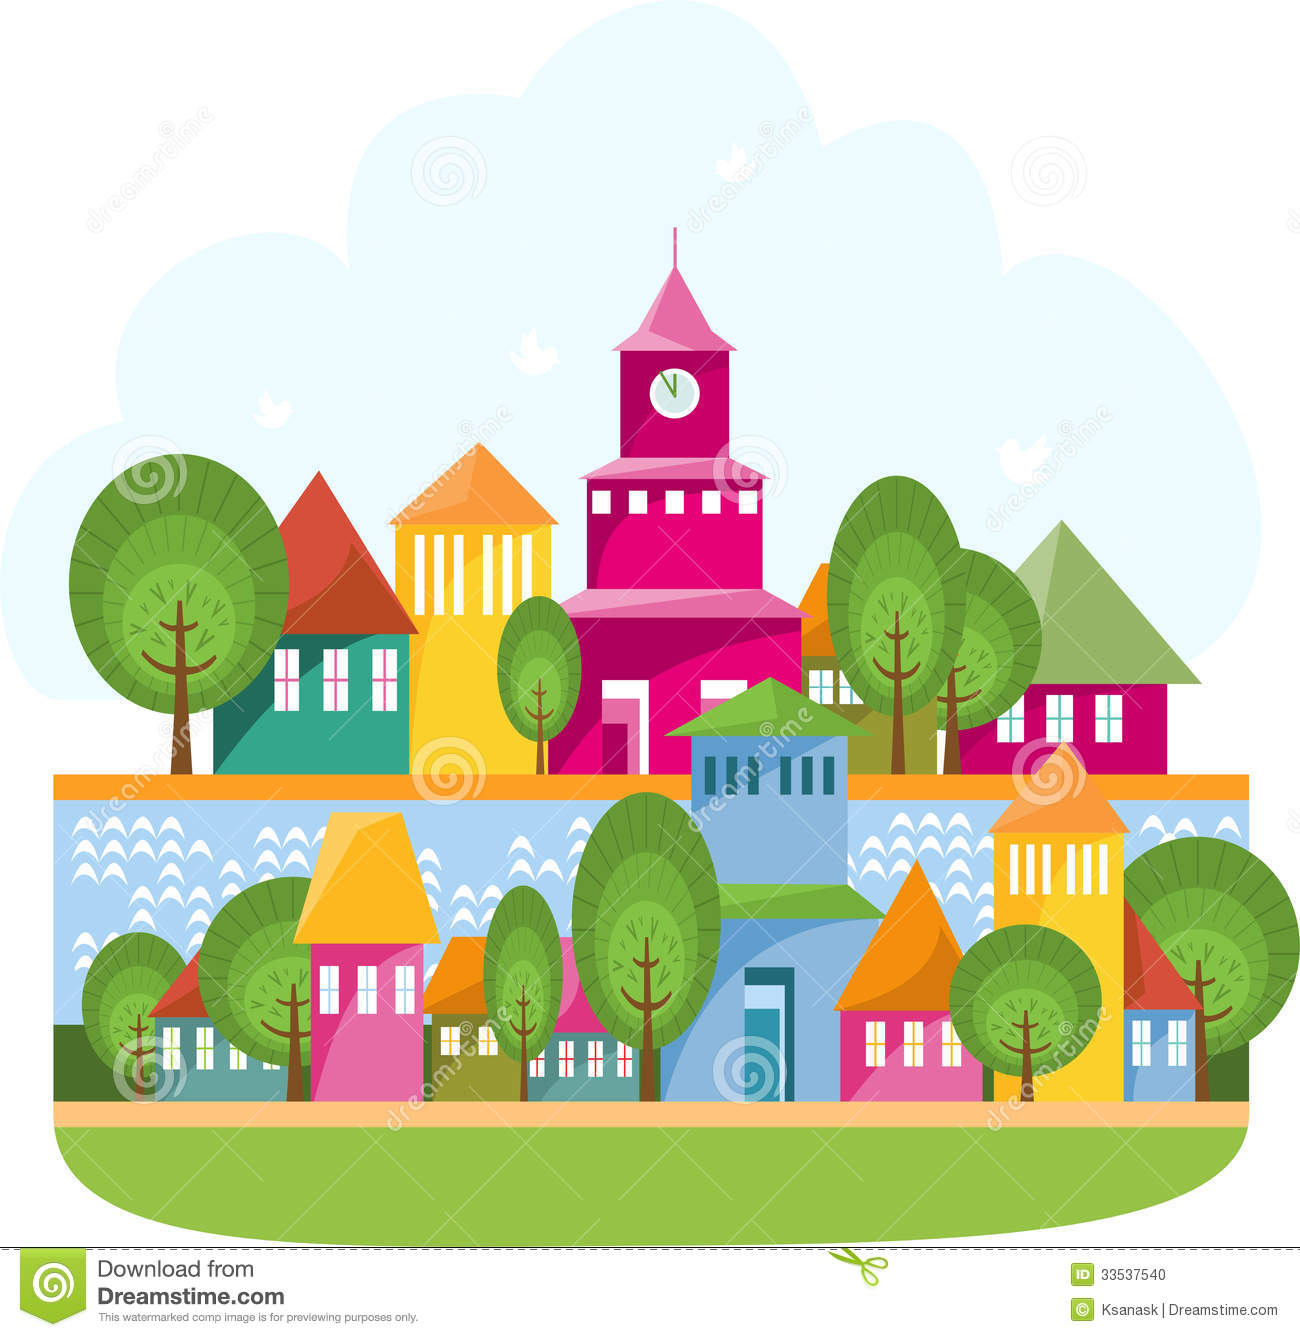 Town Landscape Vector Illustration: Small Town On The River Stock Vector. Illustration Of Roof